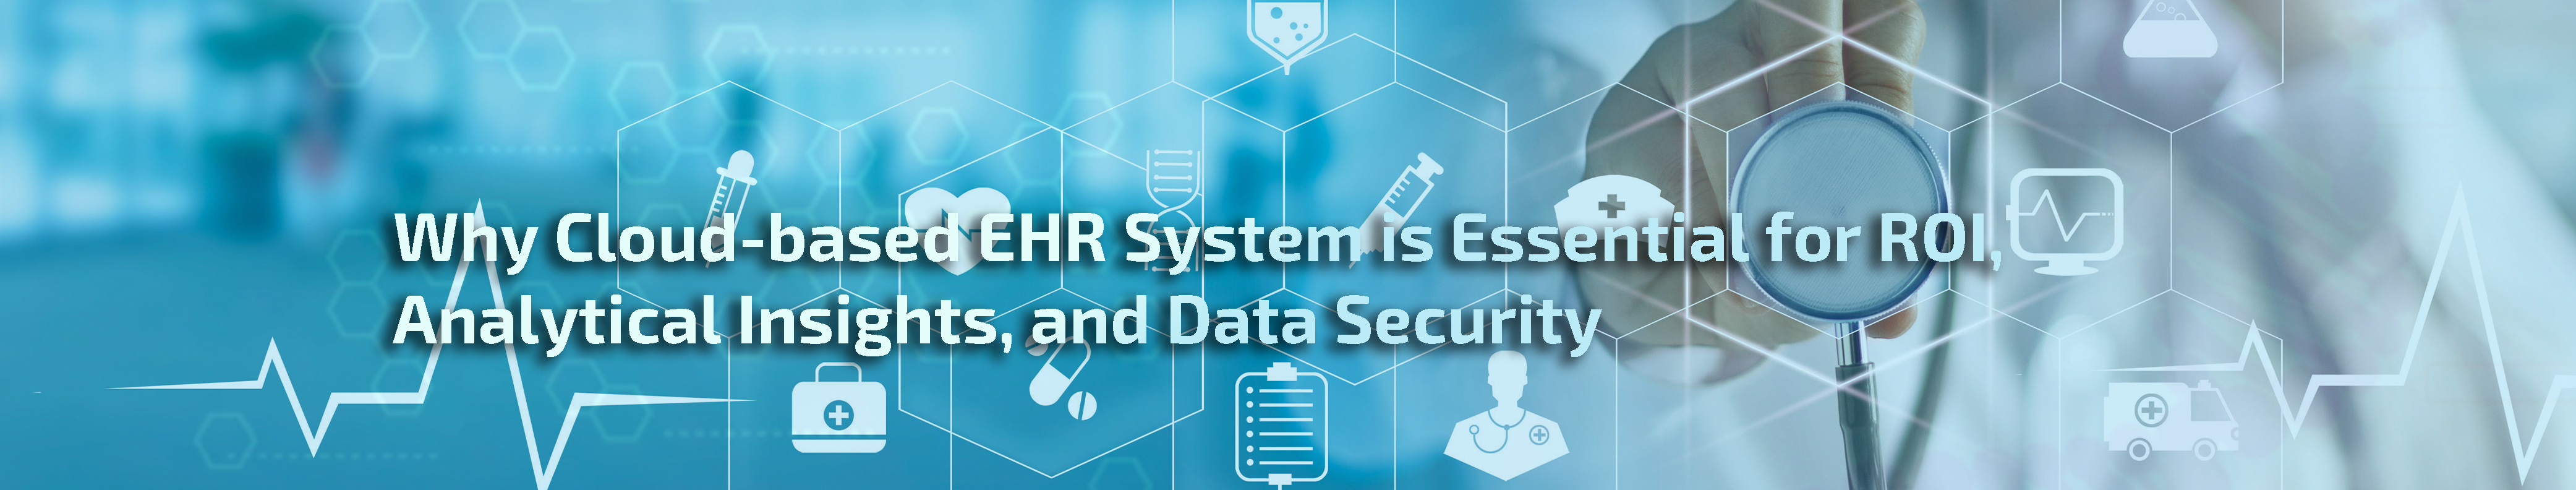 Cloud-based EHR System for ROI, Analytical Insights, and Data Security